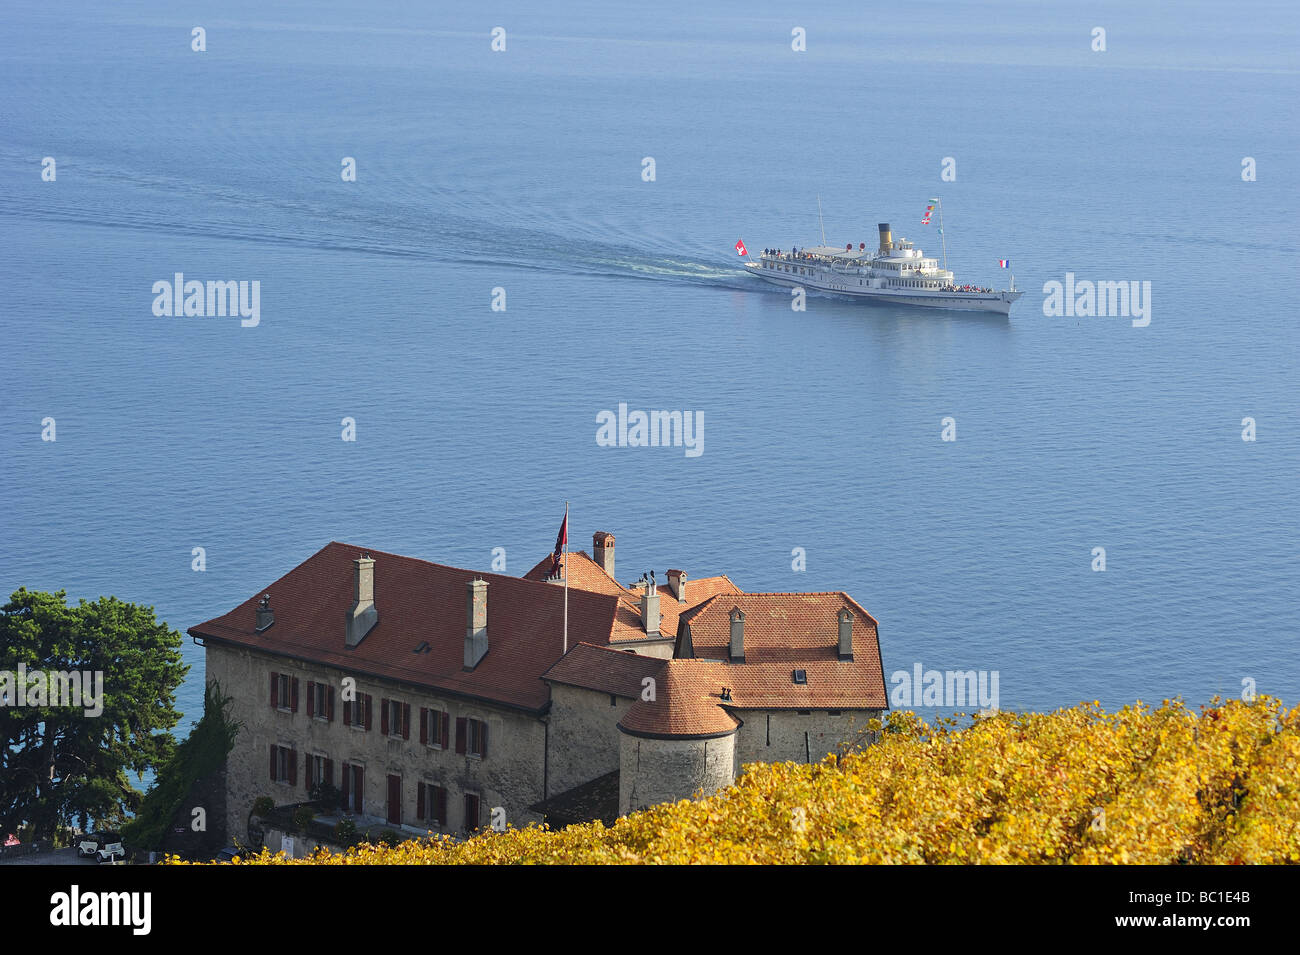 The Swiss paddle steamer 'Vevey' passing a chateau and vineyards on the shores of  Lac Leman (Lake Geneva), - Stock Image